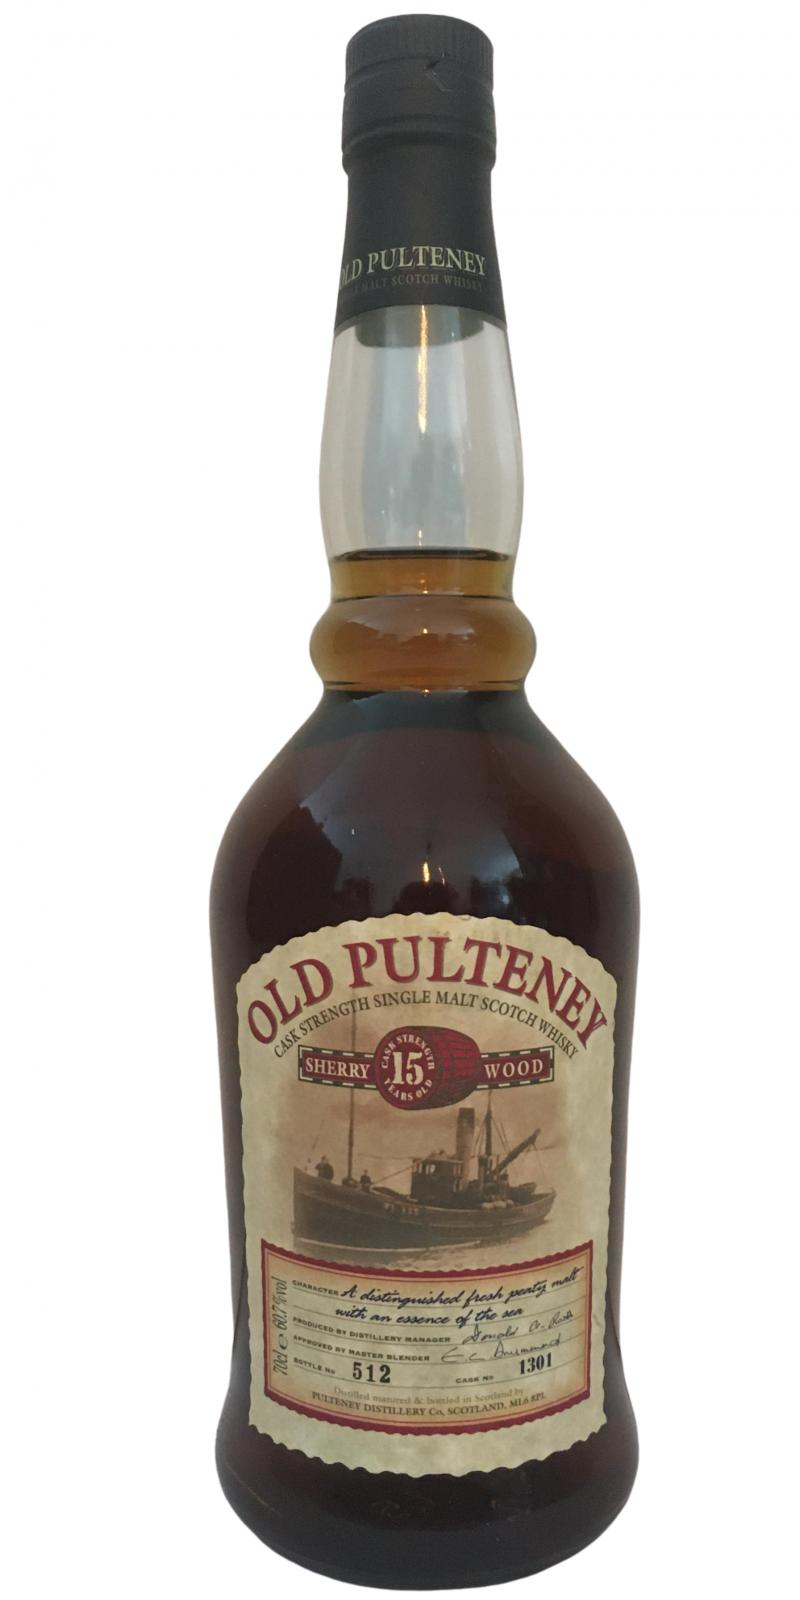 Old Pulteney 15-year-old